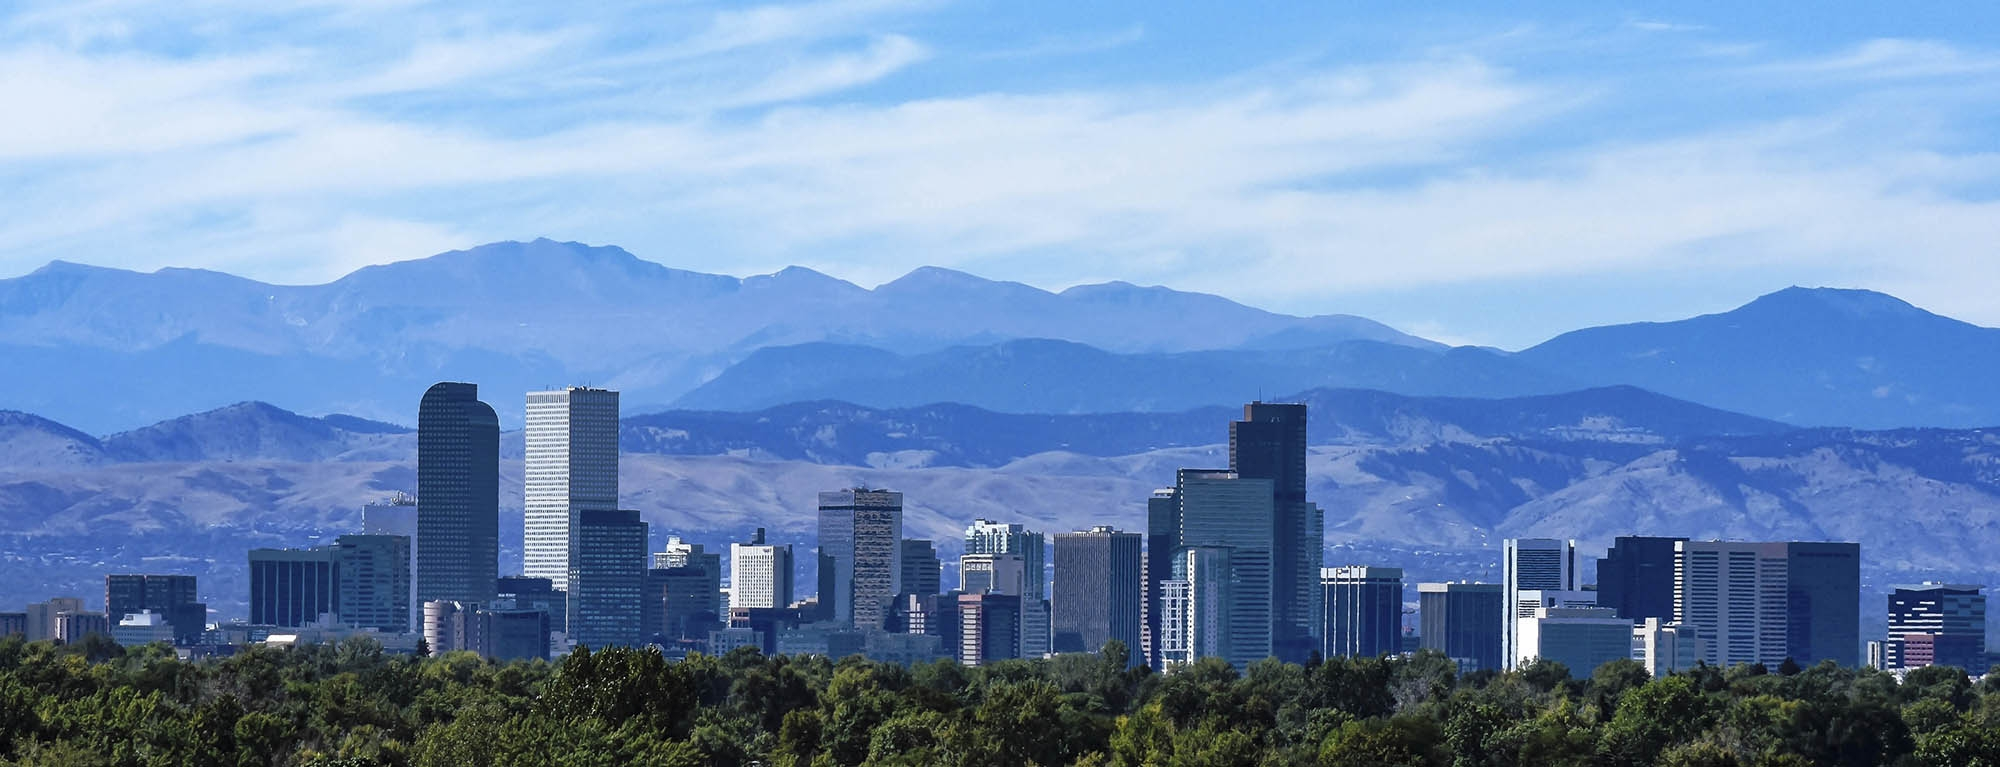 We Offer Our Services Throughout the Great State of Colorado